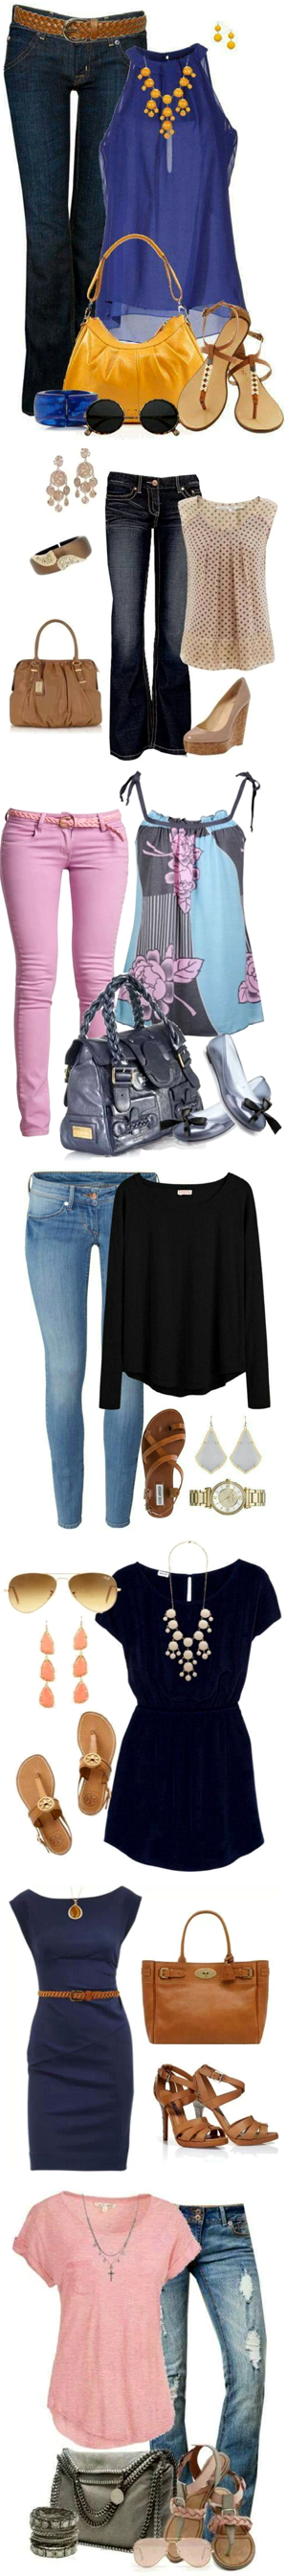 cute outfit ideas #cuteideas